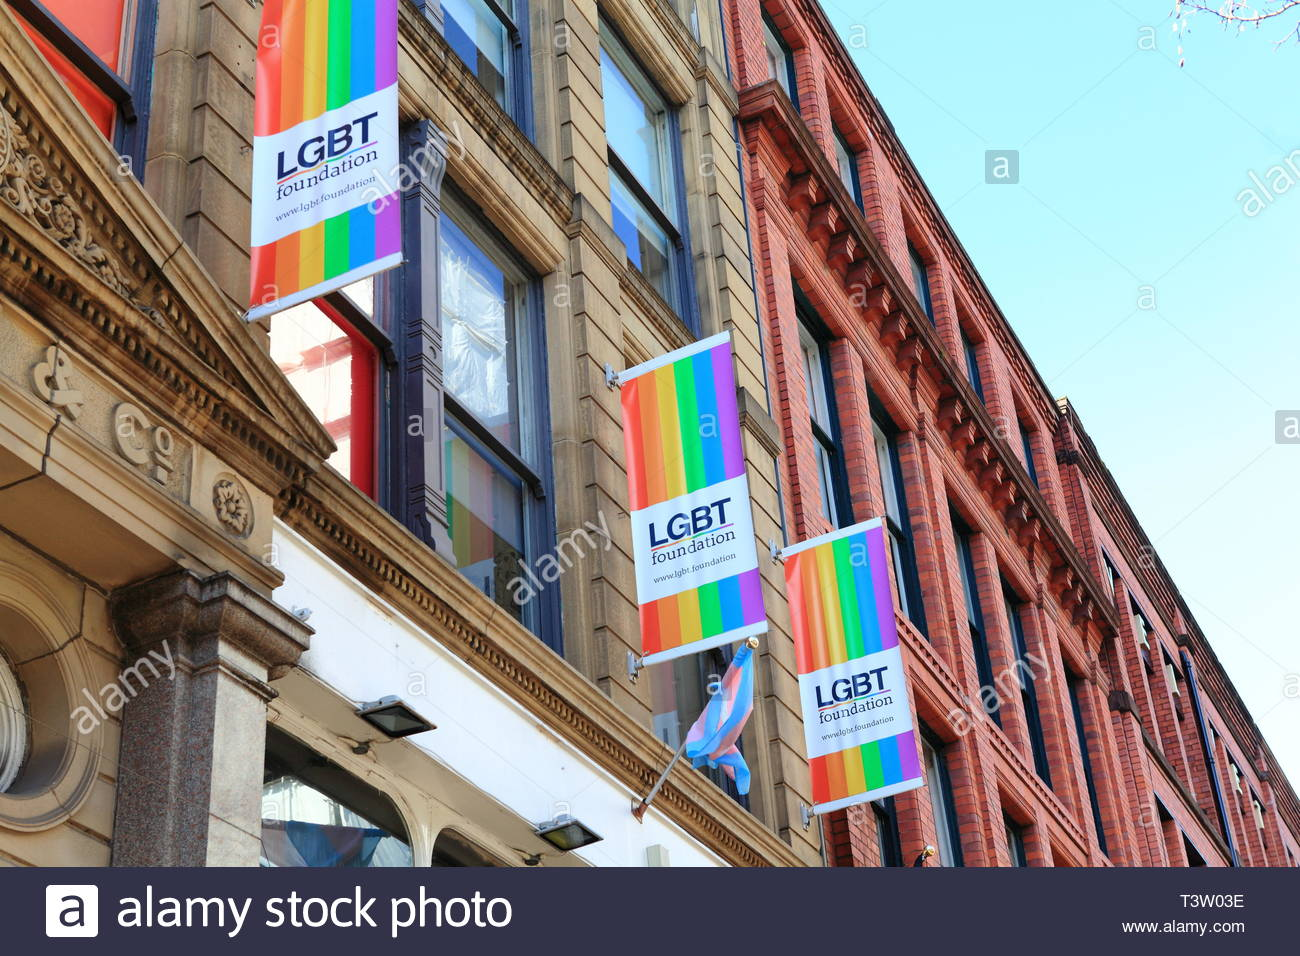 LGBT sign on stone wall at Canal Street at Gay Village Manchester UK - Stock Image